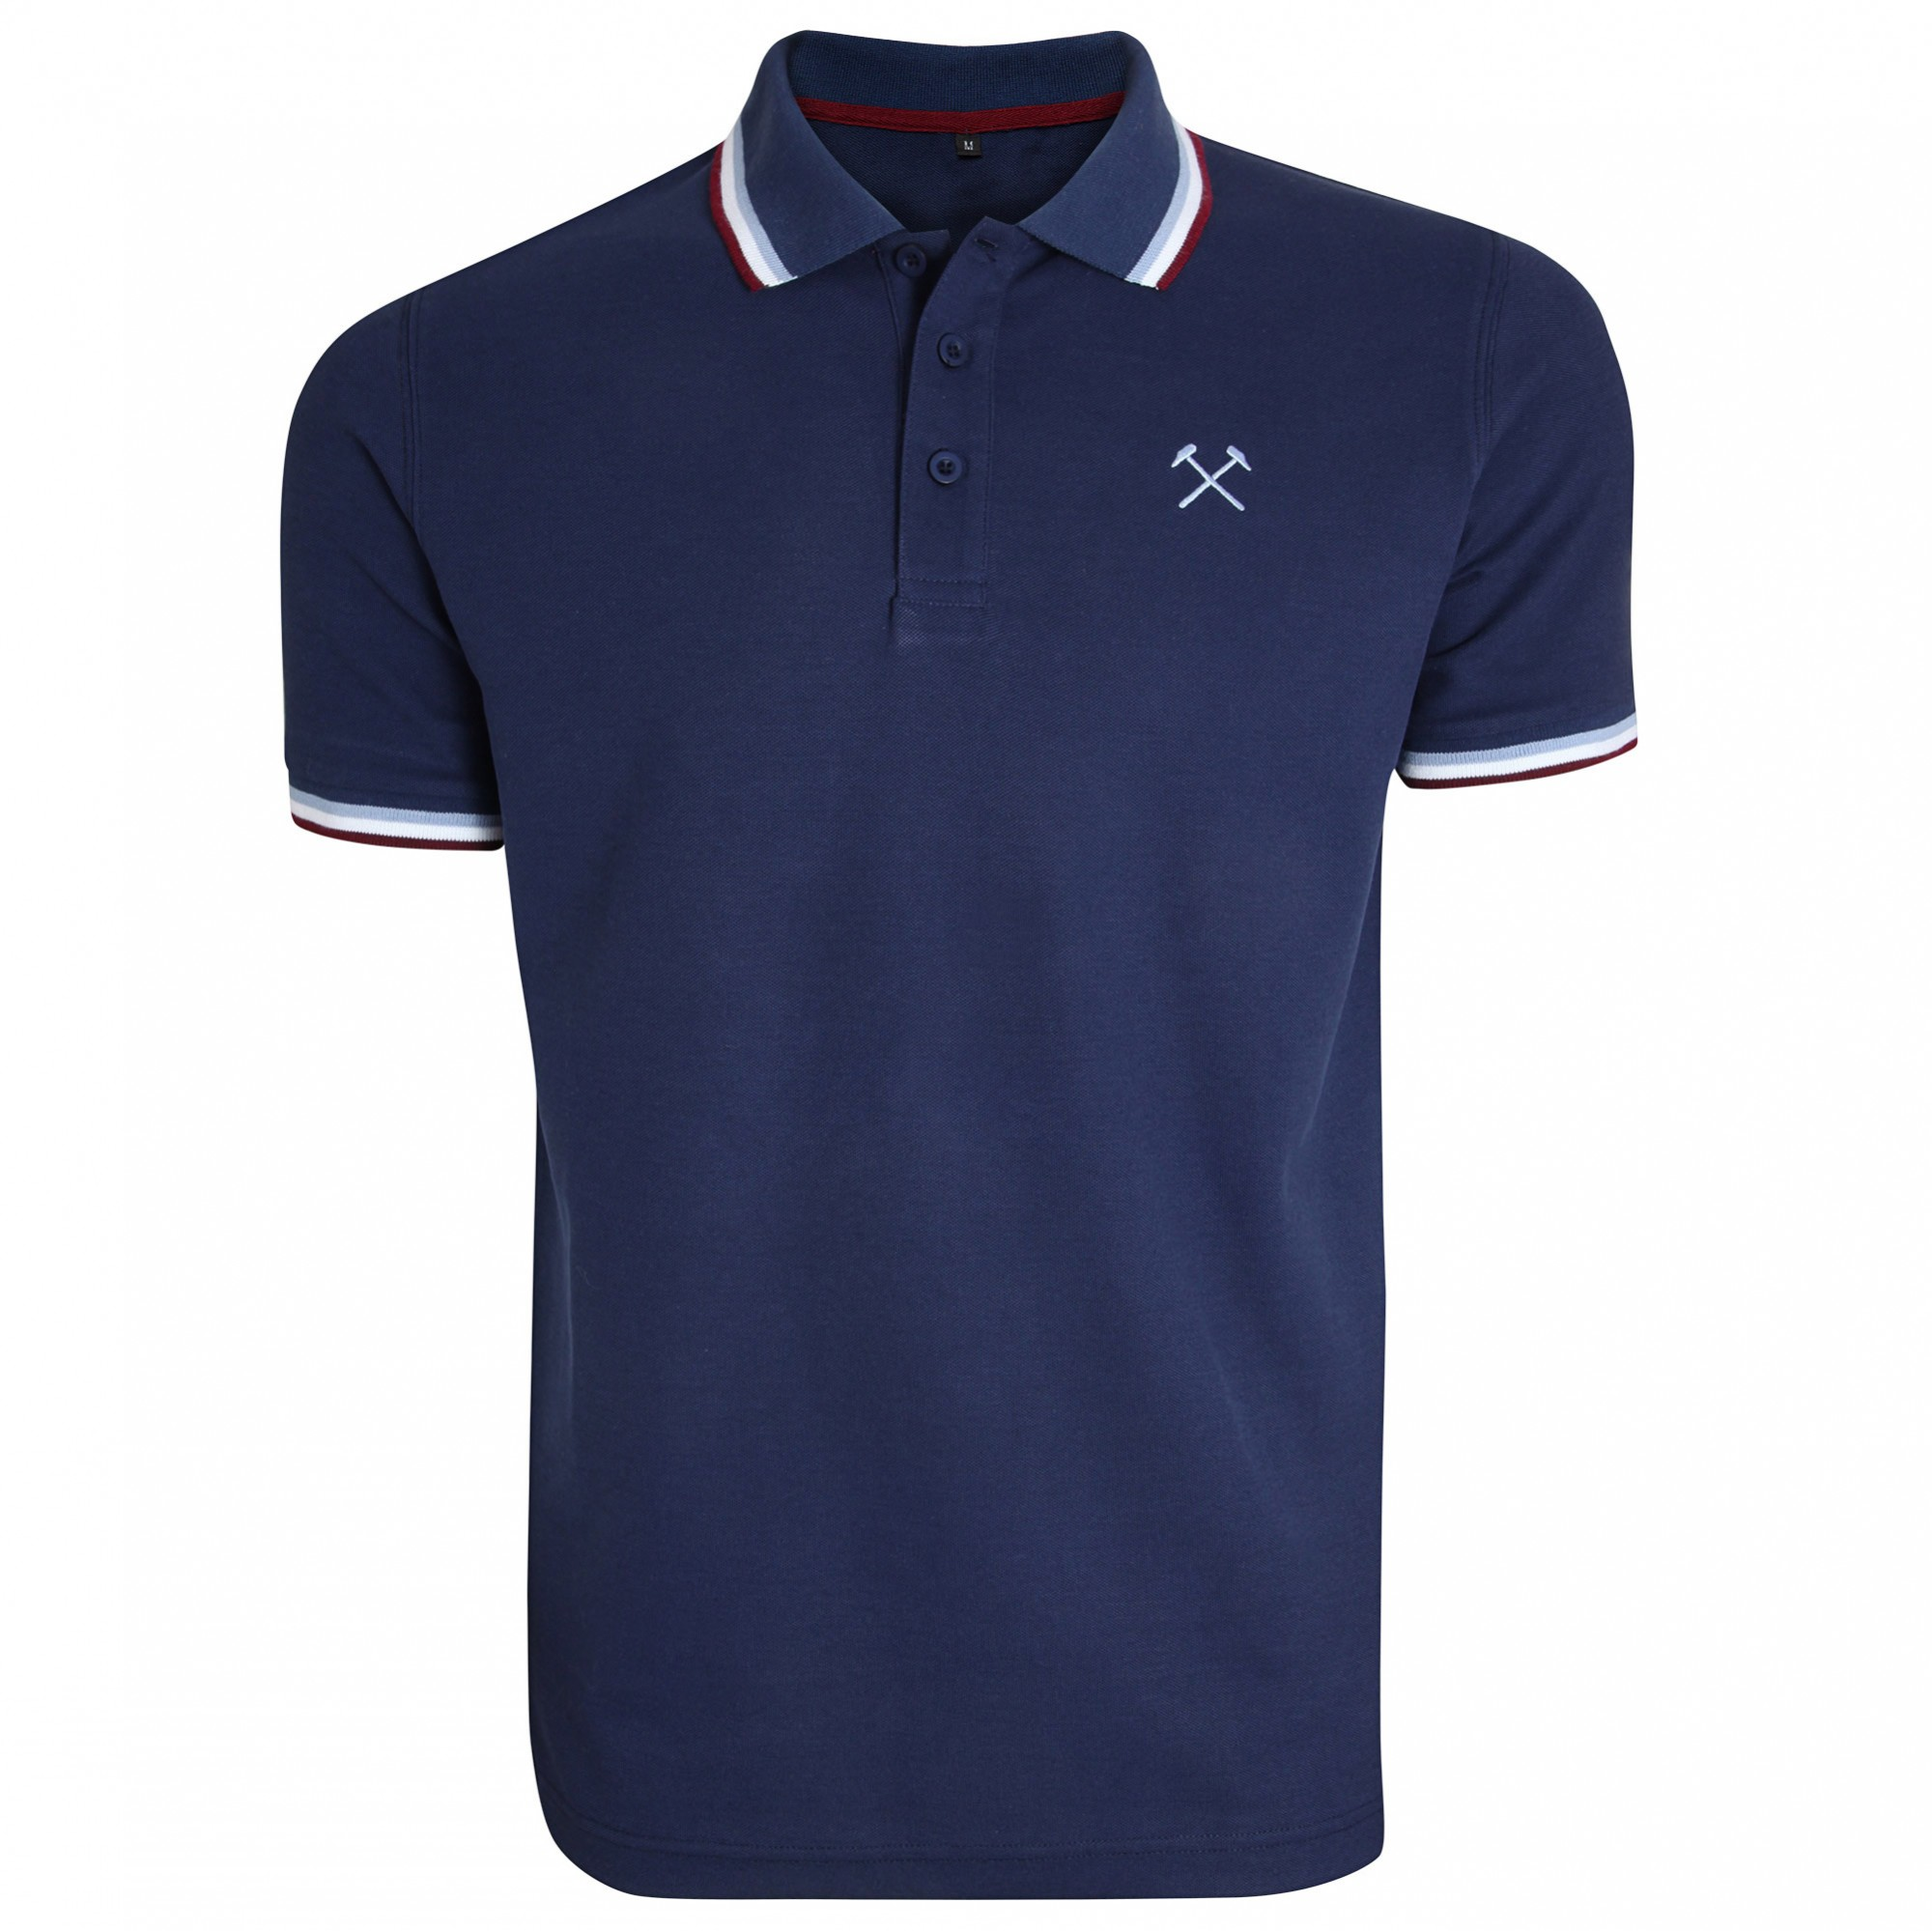 NAVY TIPPED HAMMERS POLO